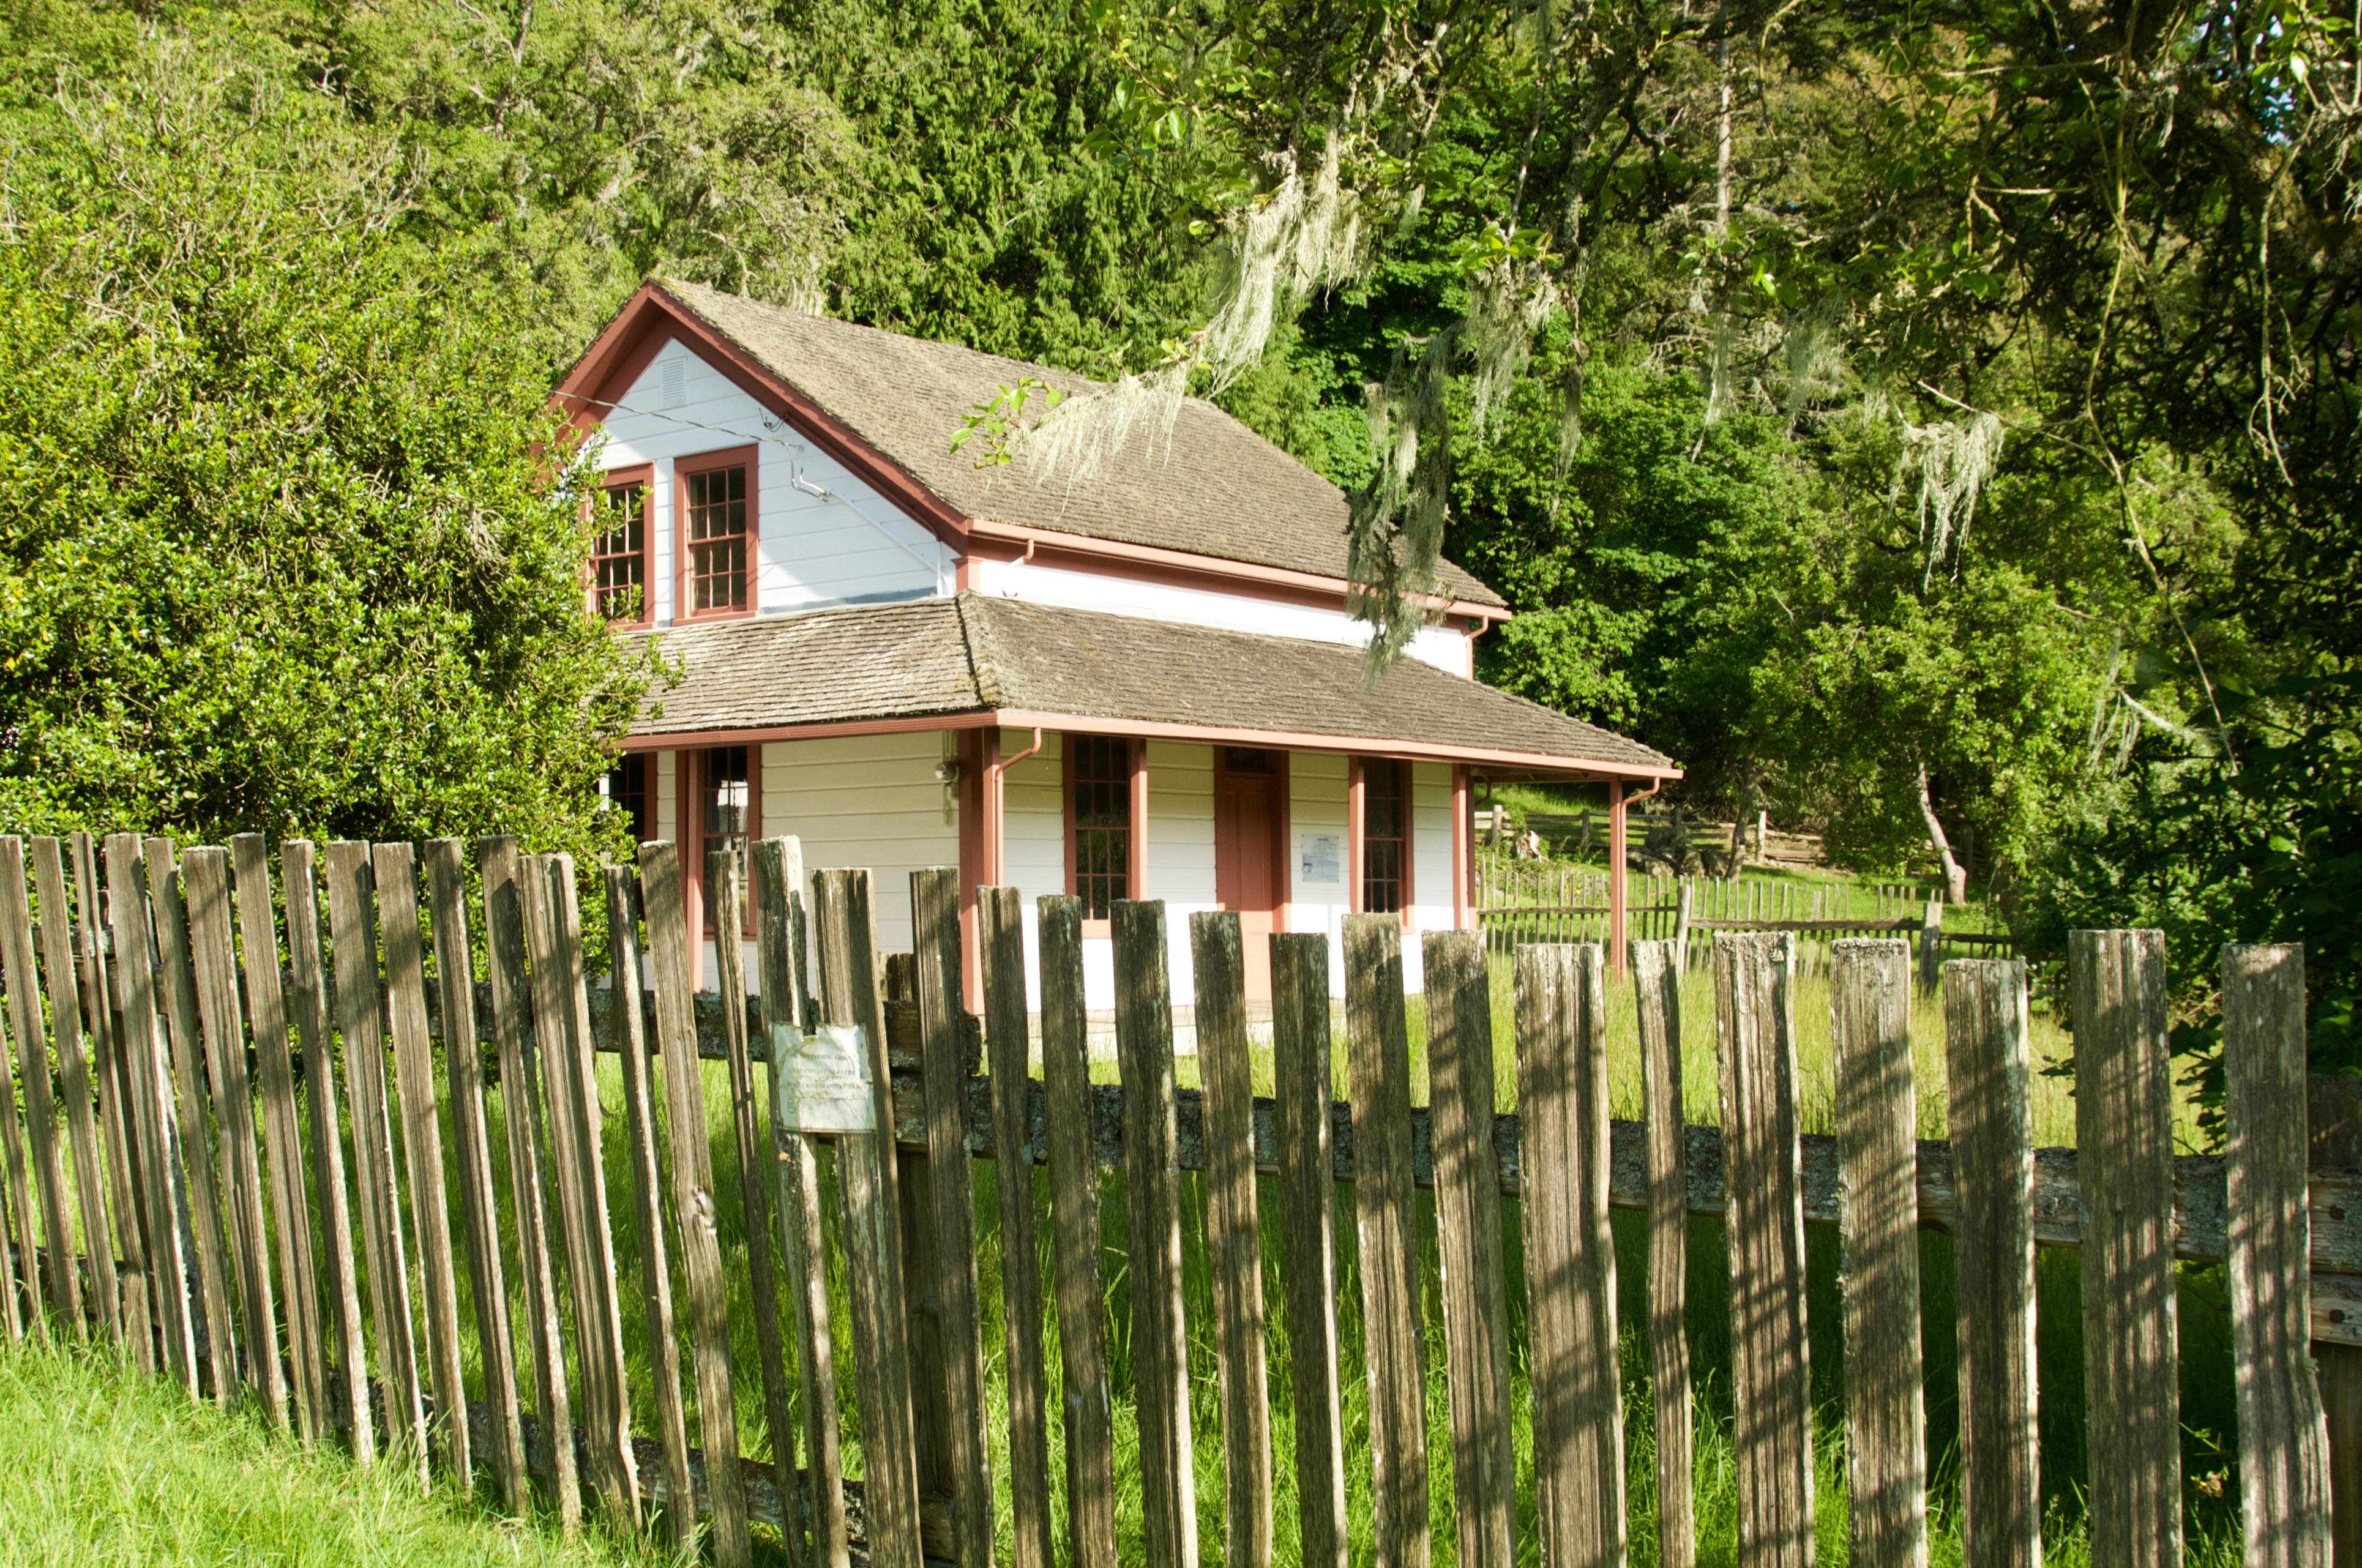 The original Ruckle homestead house in Ruckle Provincial Park.